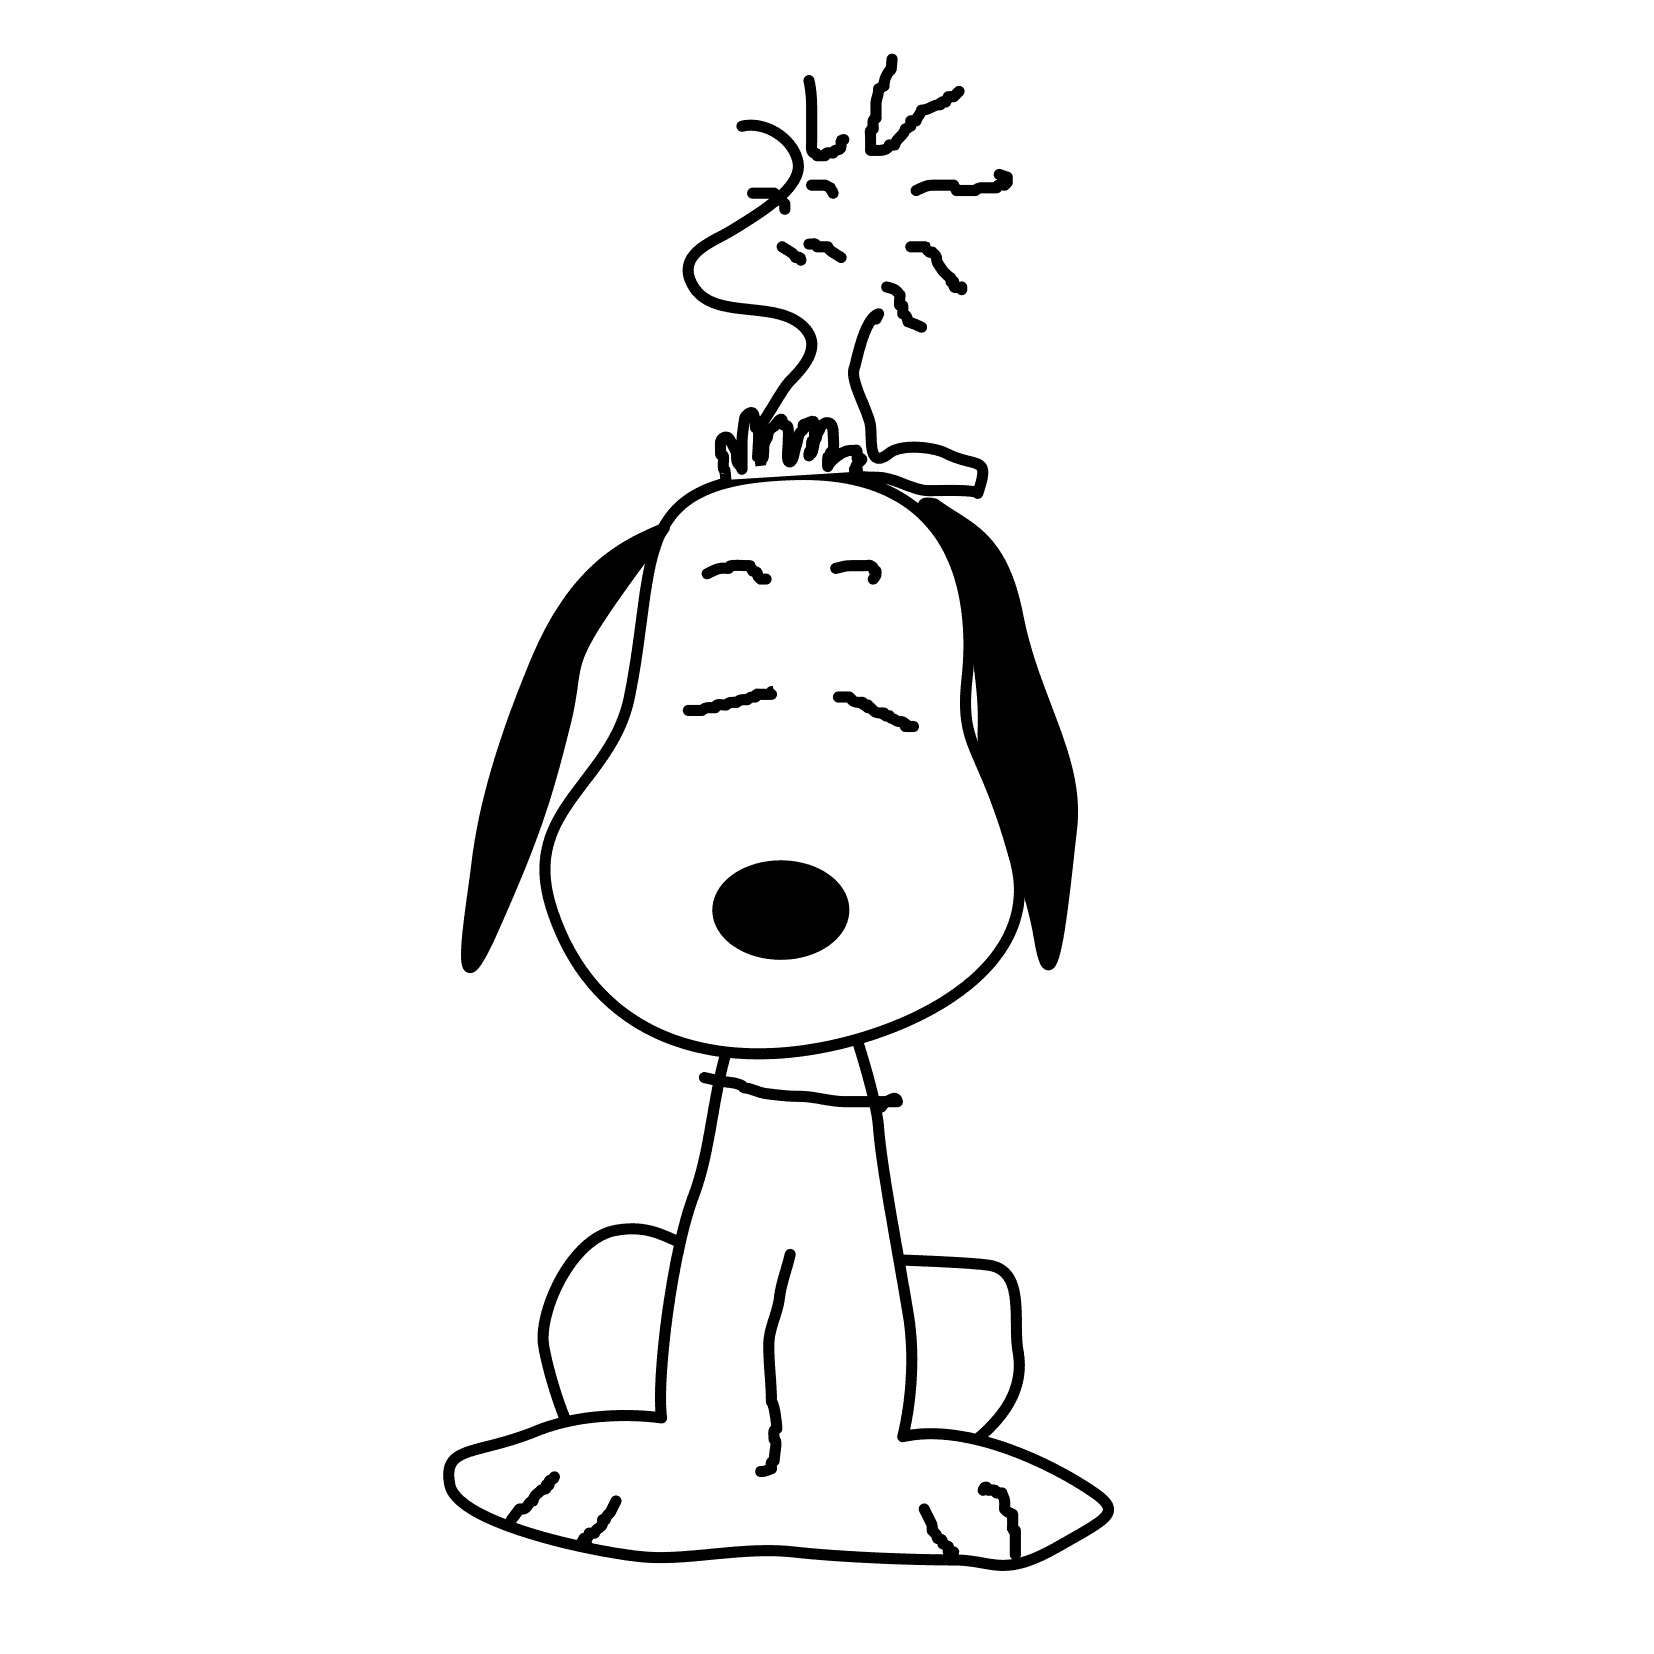 Snoopy coloring pages to download and print for free